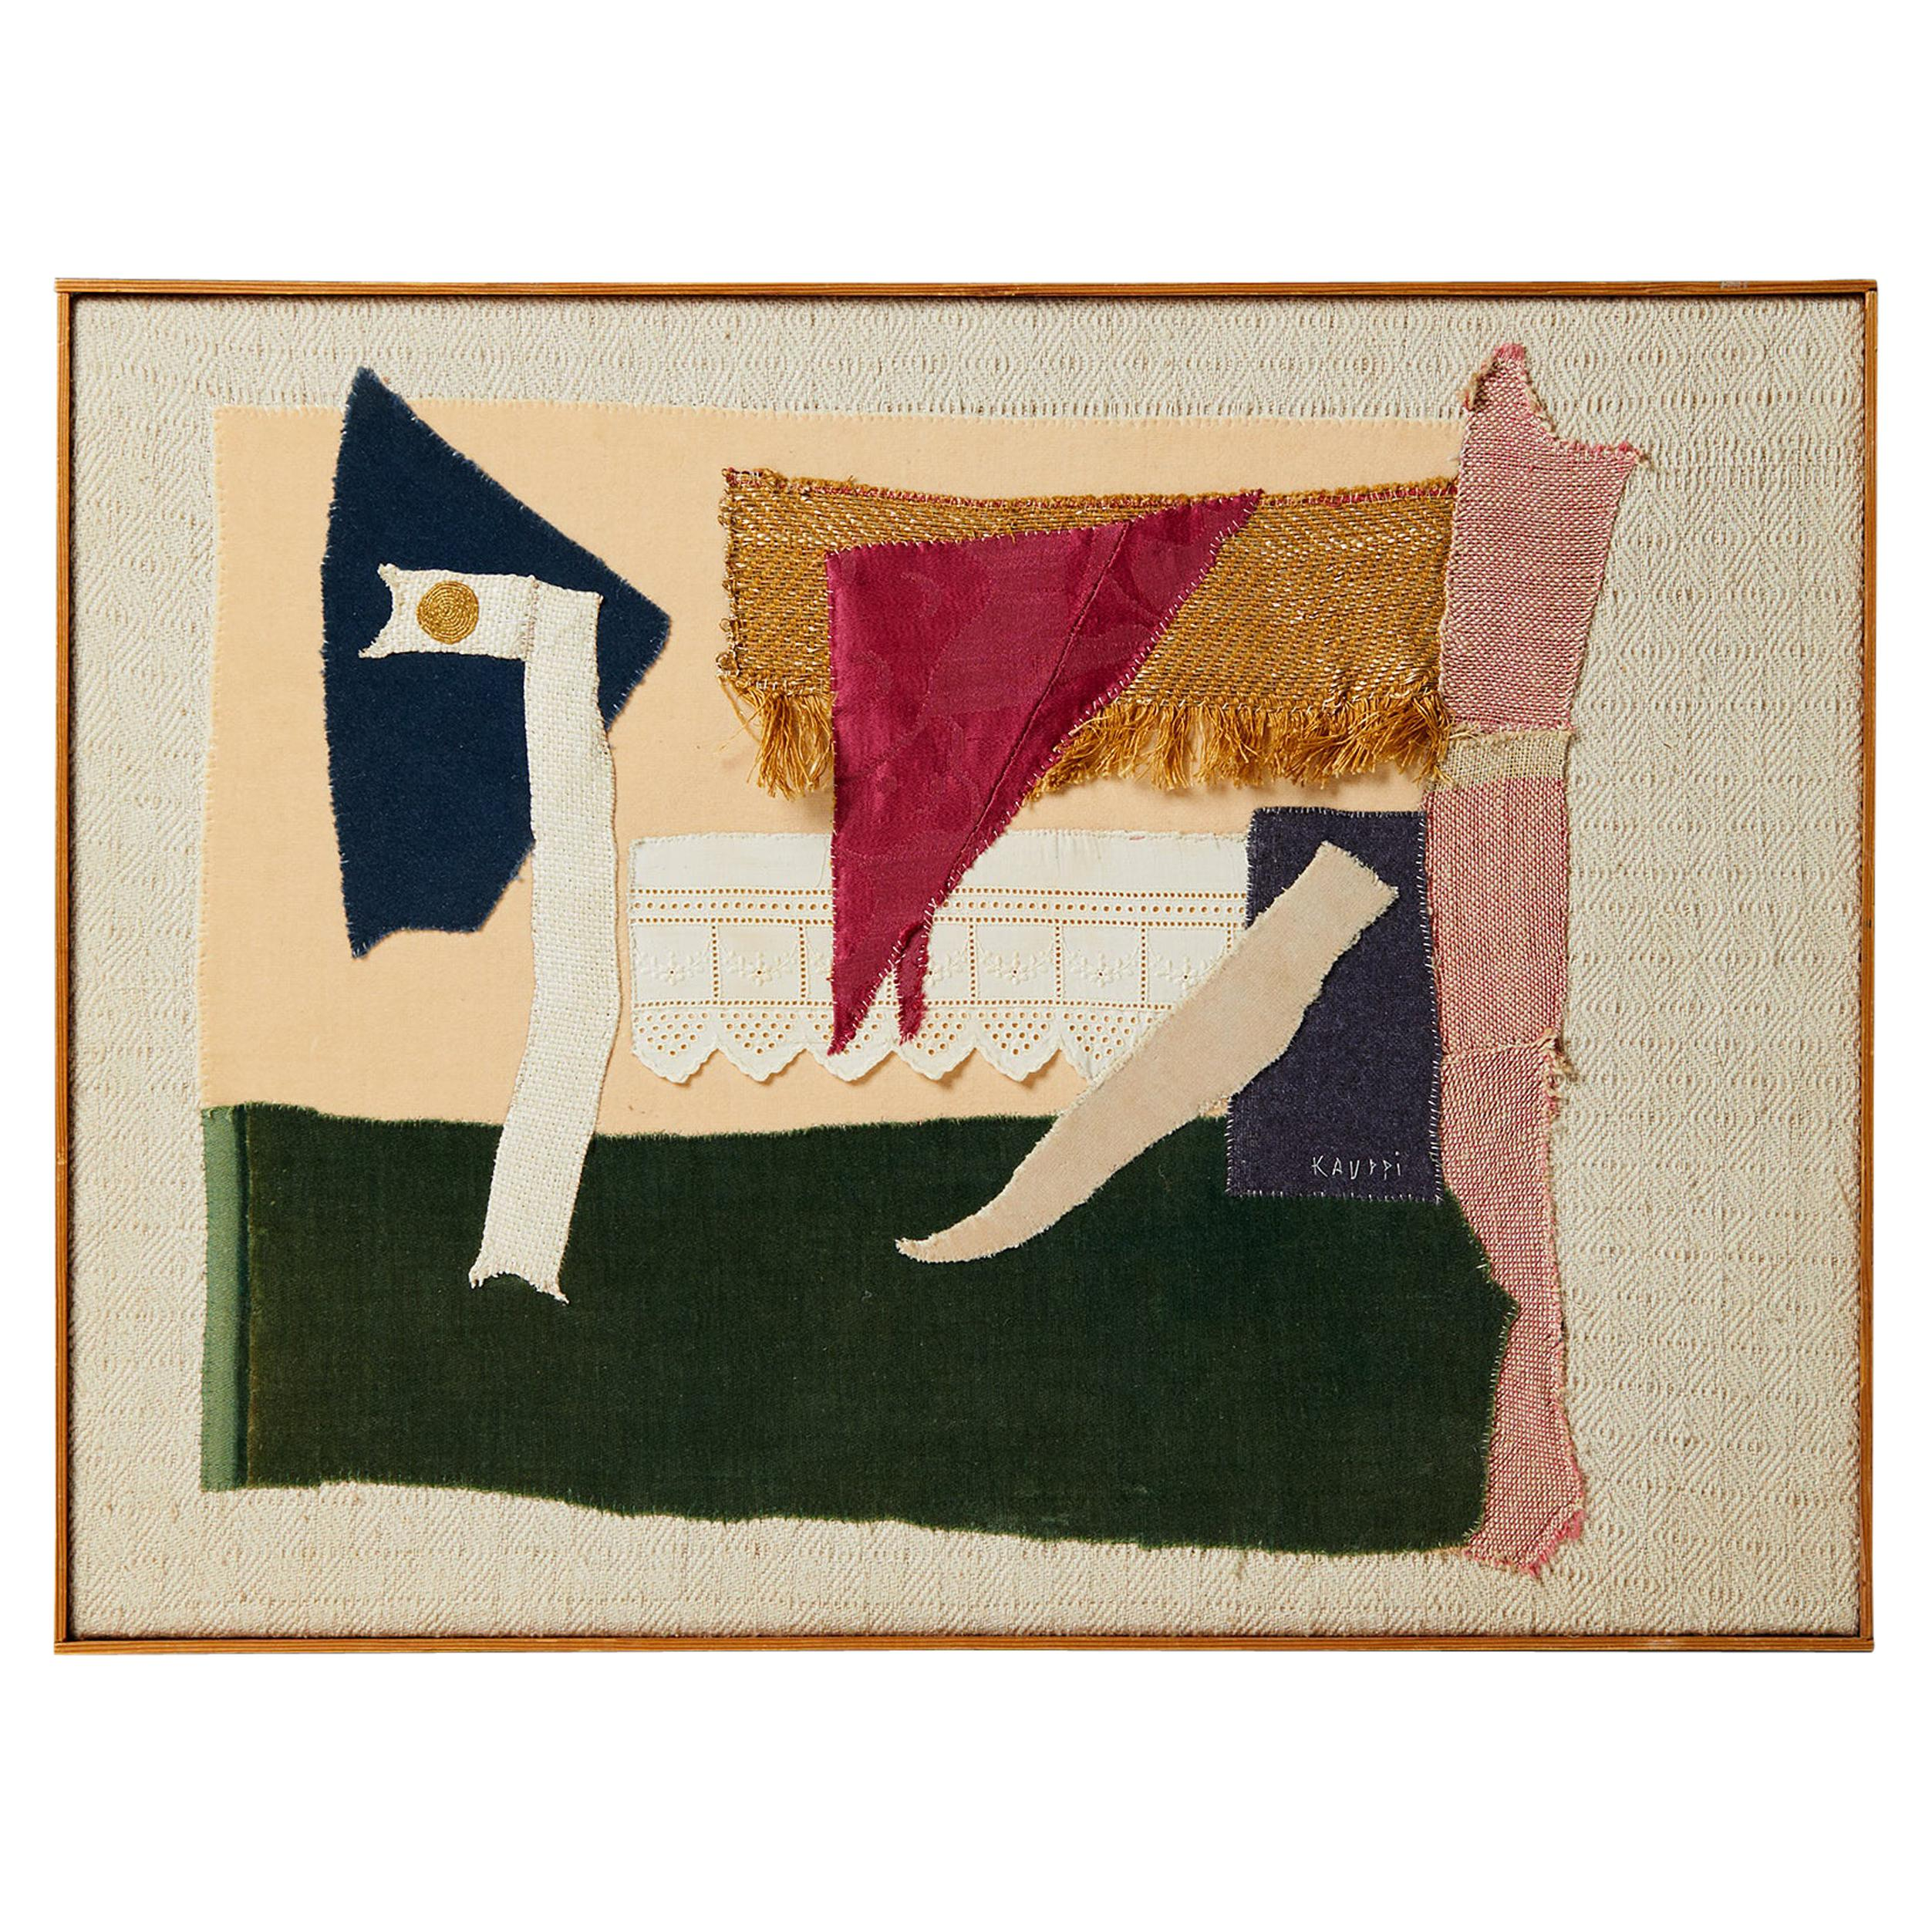 Tapestry or Collage by Sten Kauppi, Sweden, 1970s